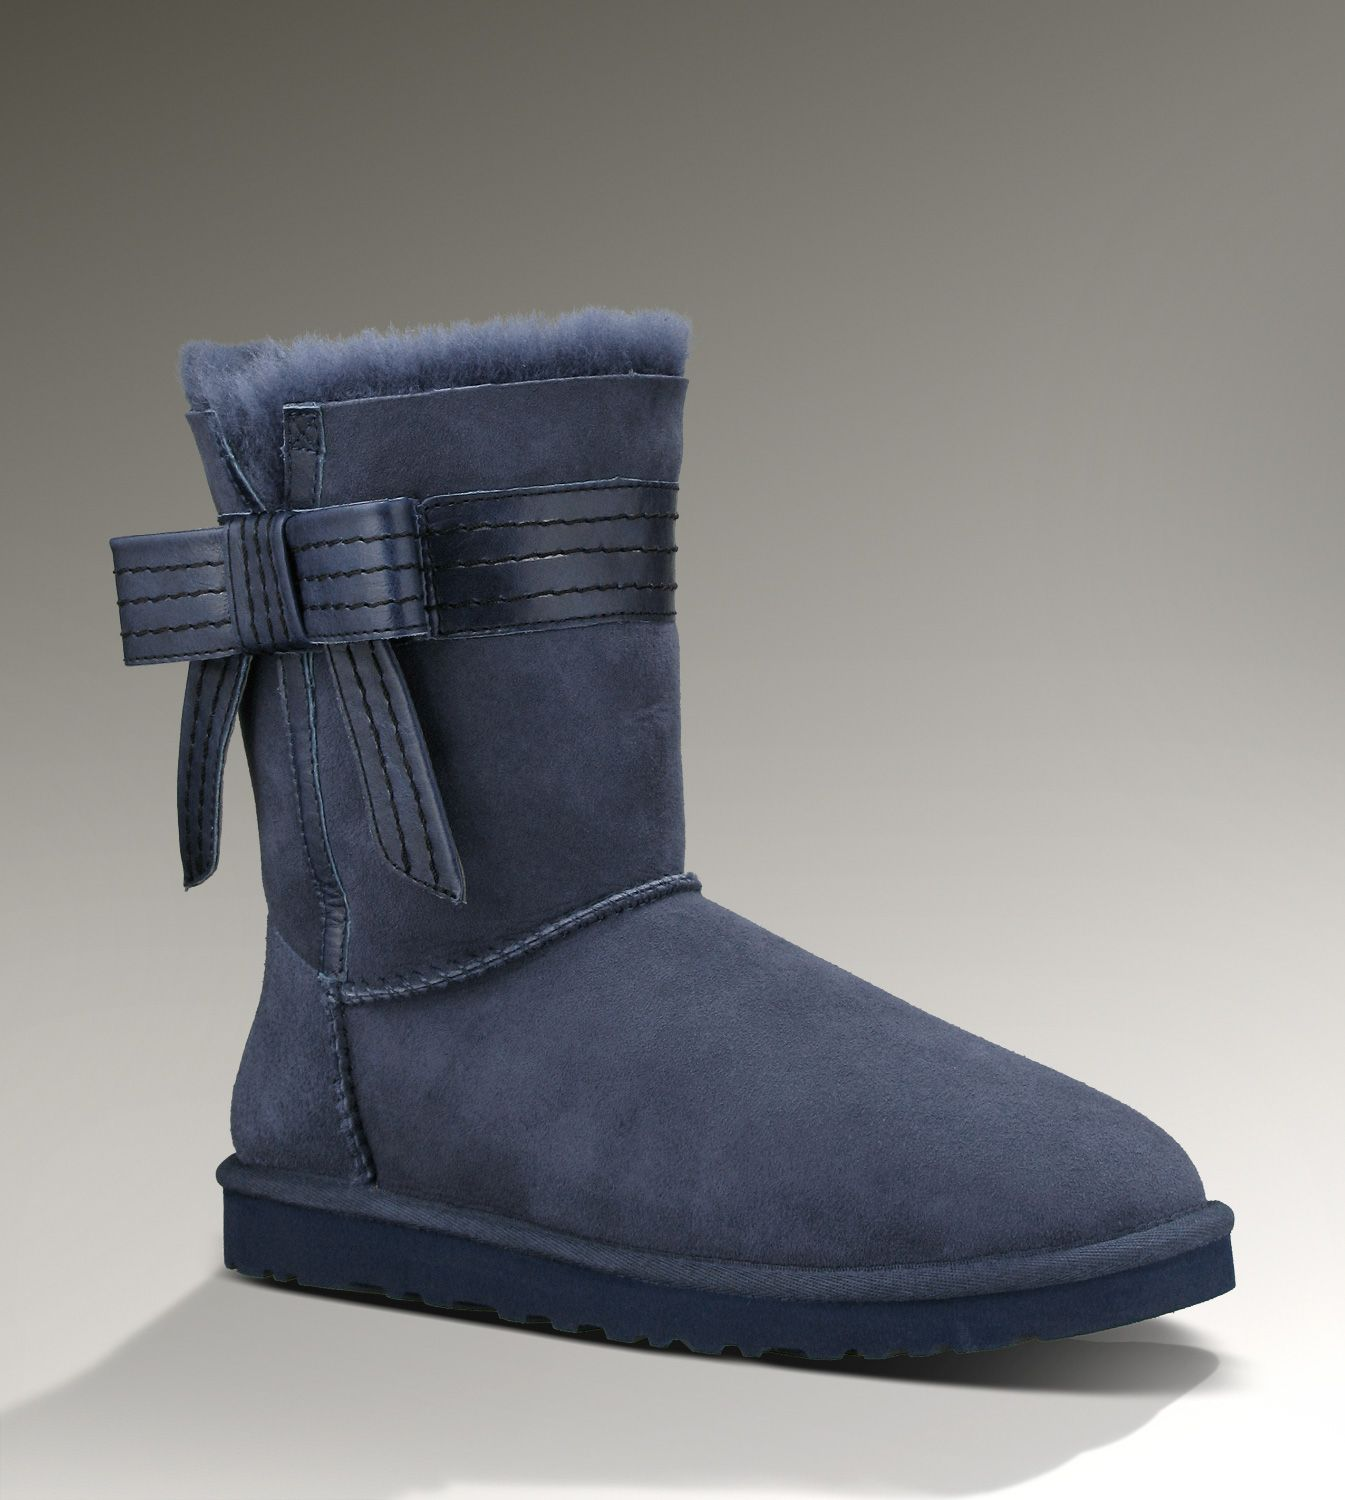 Cheap ugg boots online on sale with high quality, Womens Josette Navy